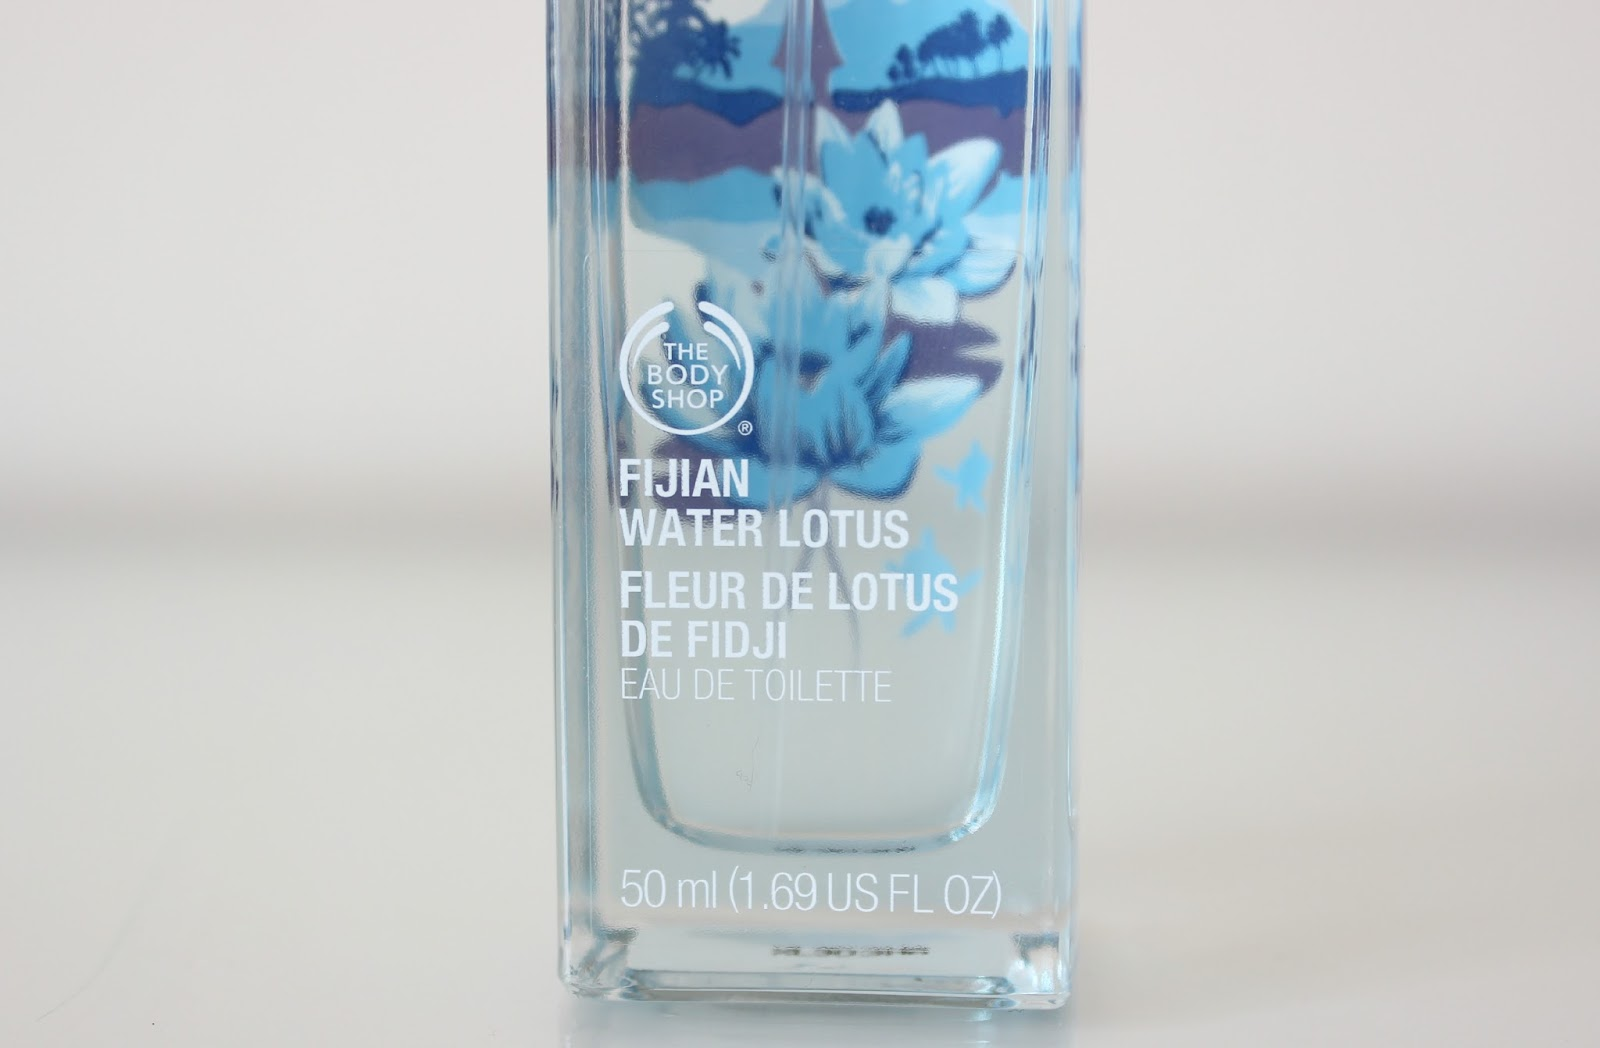 A picture of The Body Shop Fijian Water Lotus Eau de Toilette